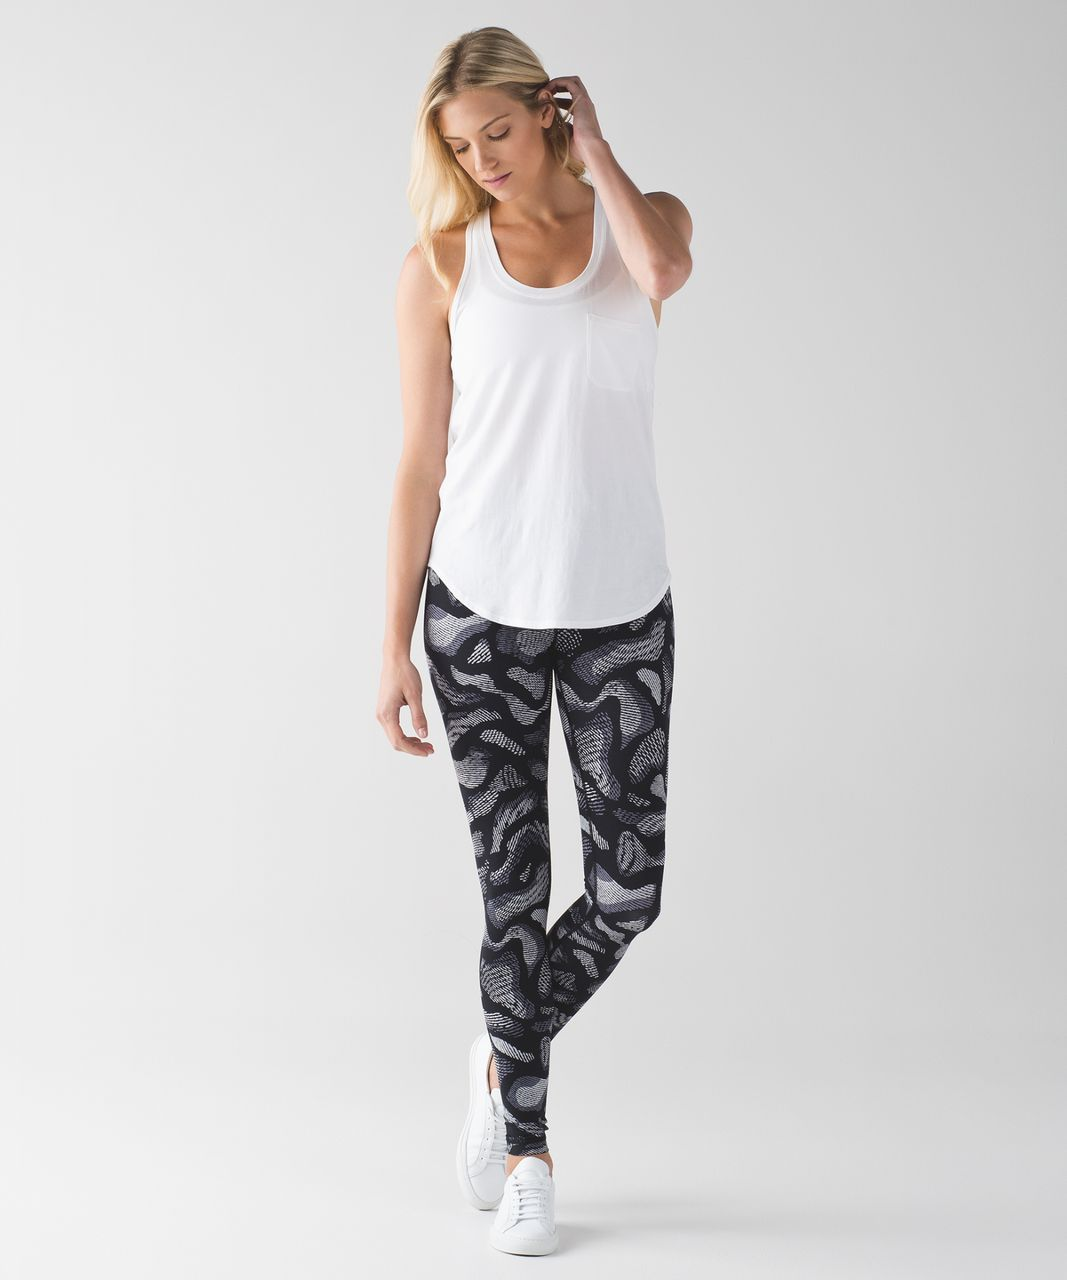 Lululemon Wunder Under Pant (Hi-Rise) - Warp Ice Grey Black